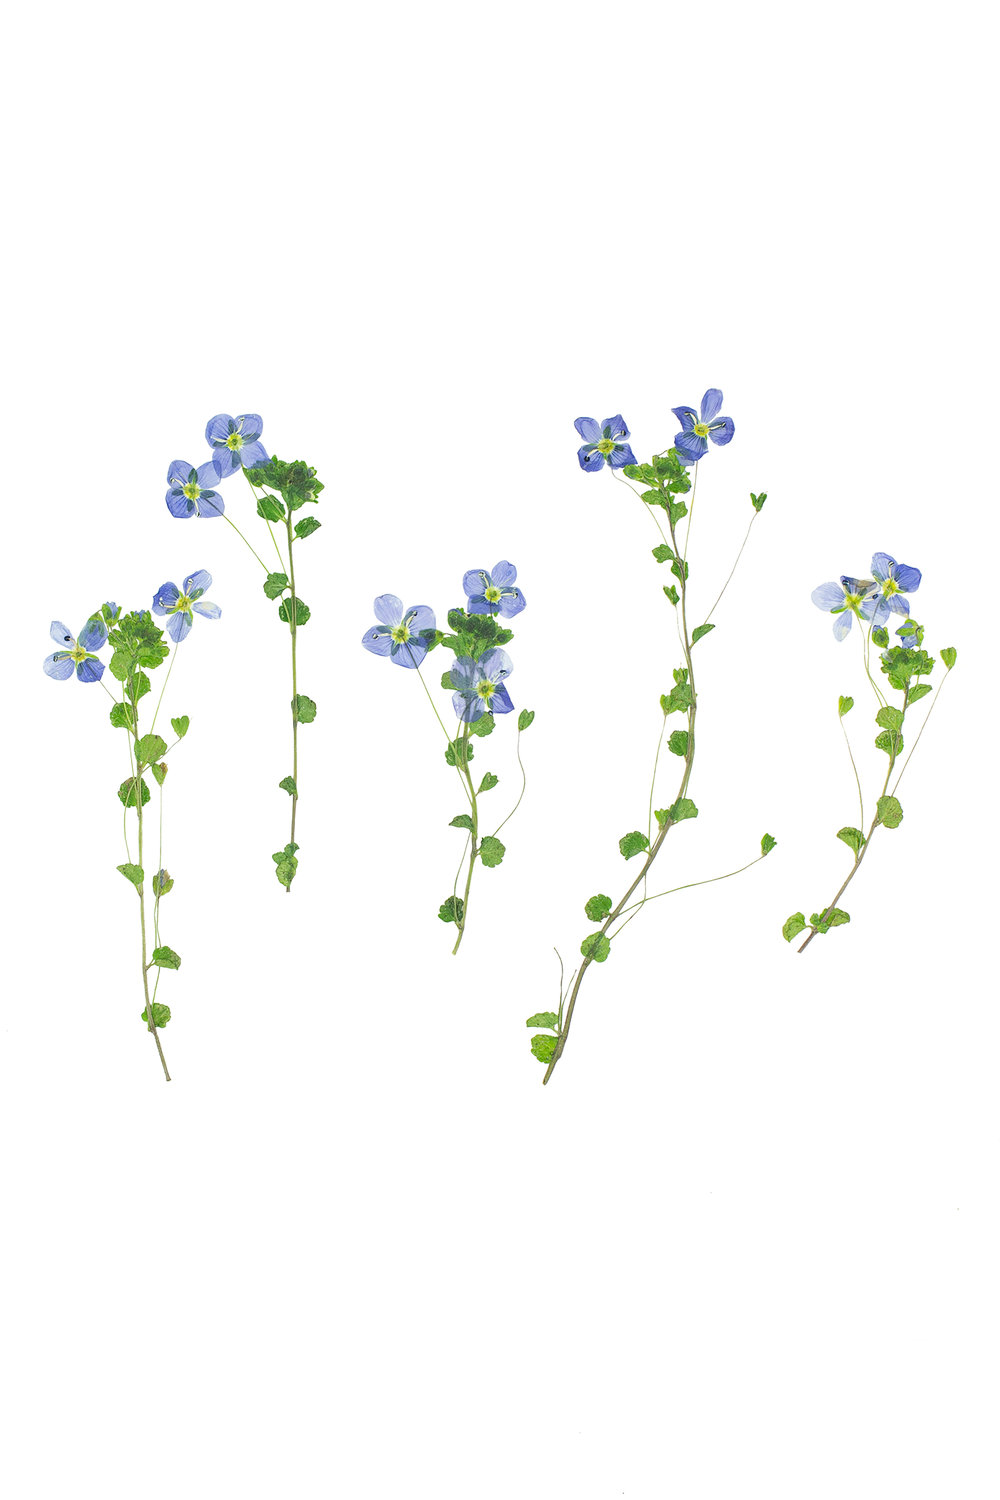 Slender Speedwell / Veronica filiformis